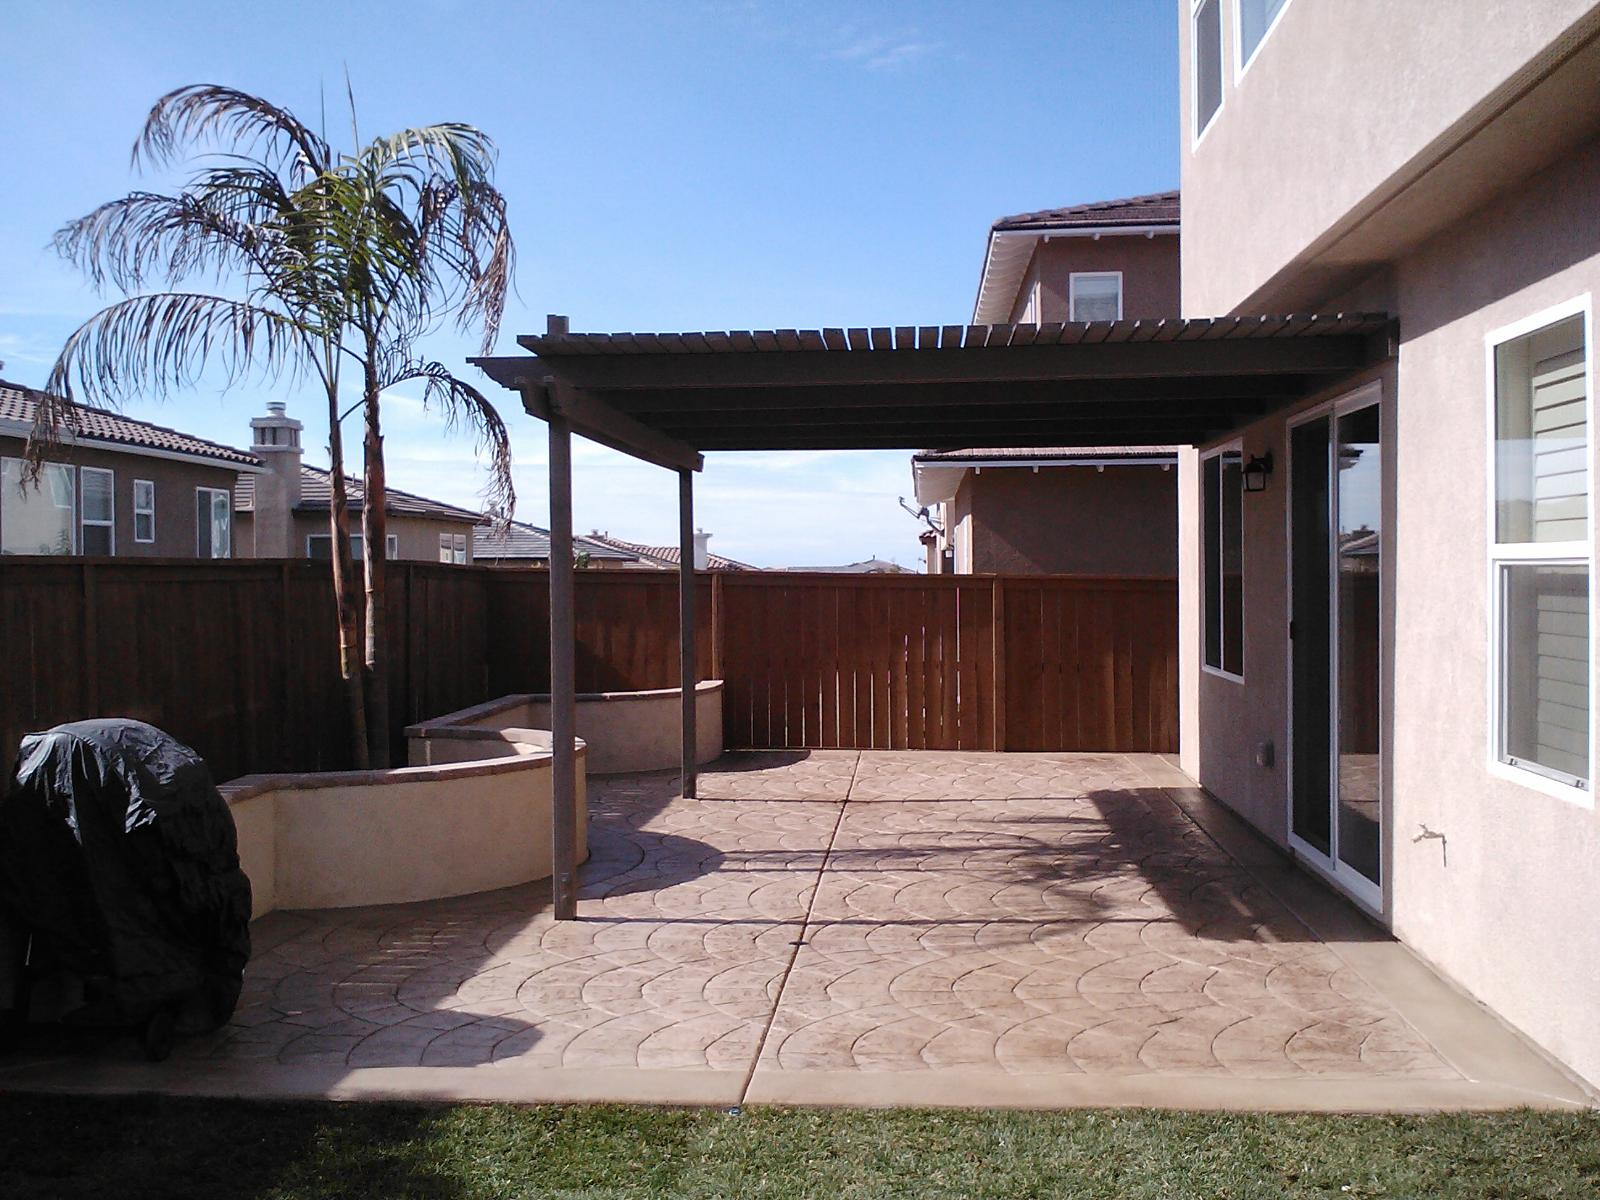 Stamped Patio Concrete Contractor Lemon Grove, Decorative Concrete Patio Contractors